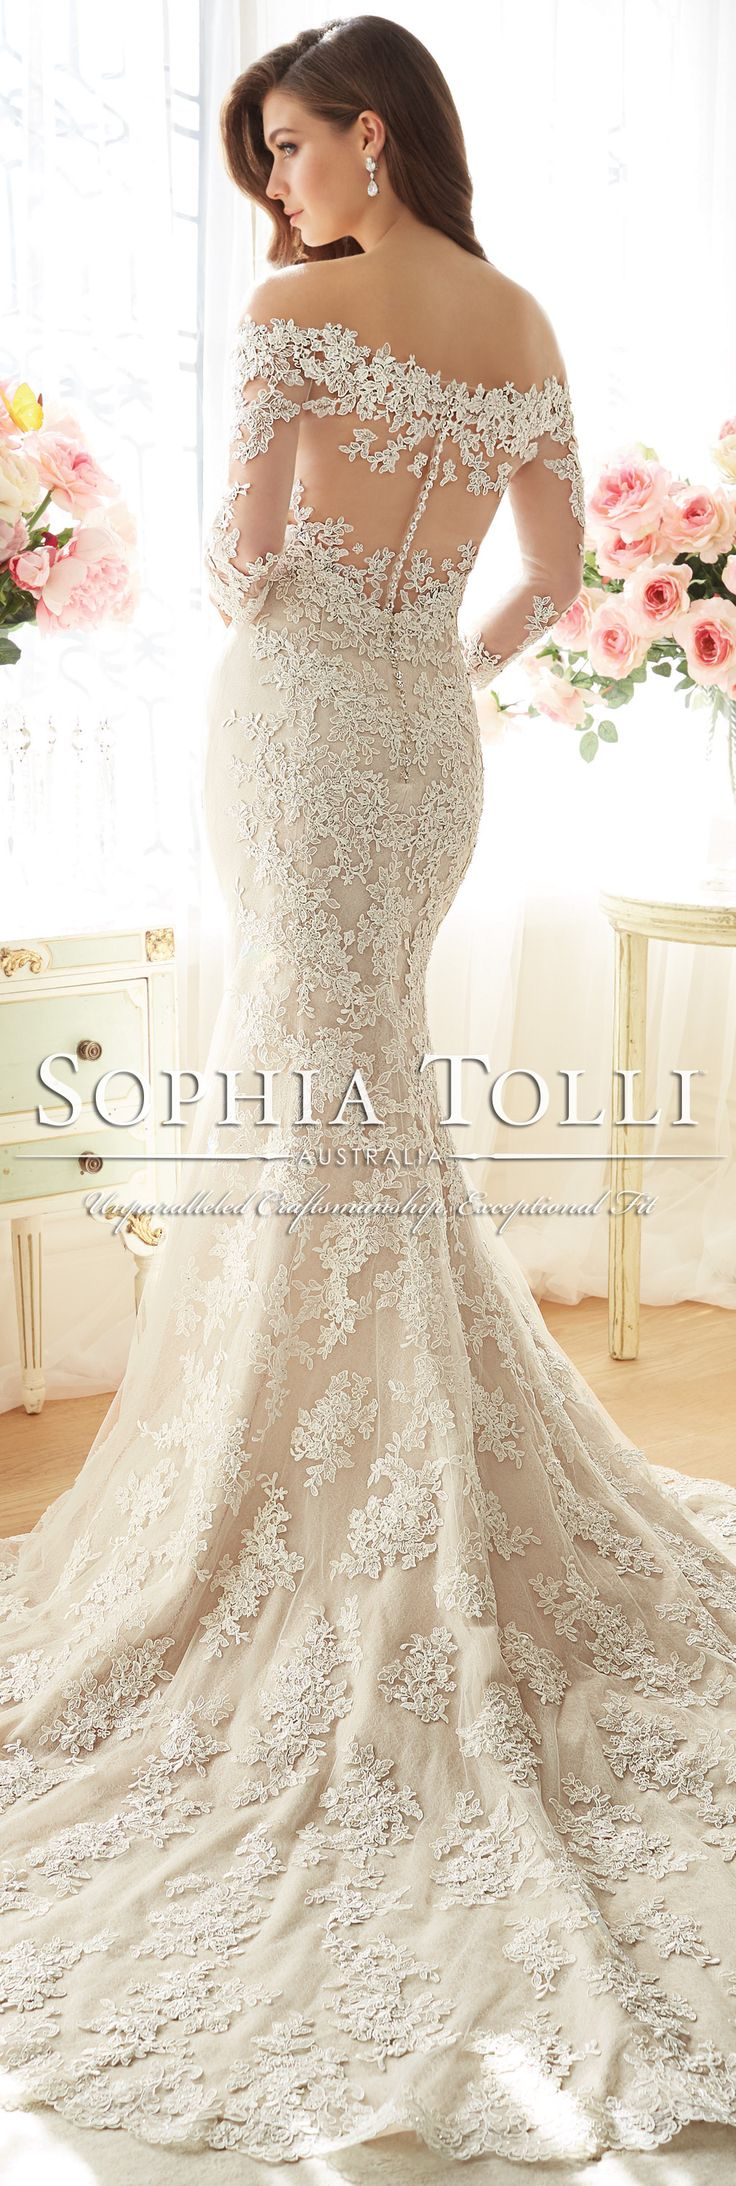 The Sophia Tolli Spring 2016 Wedding Dress Collection - Style No. Y11632 - Riona #laceweddingdress